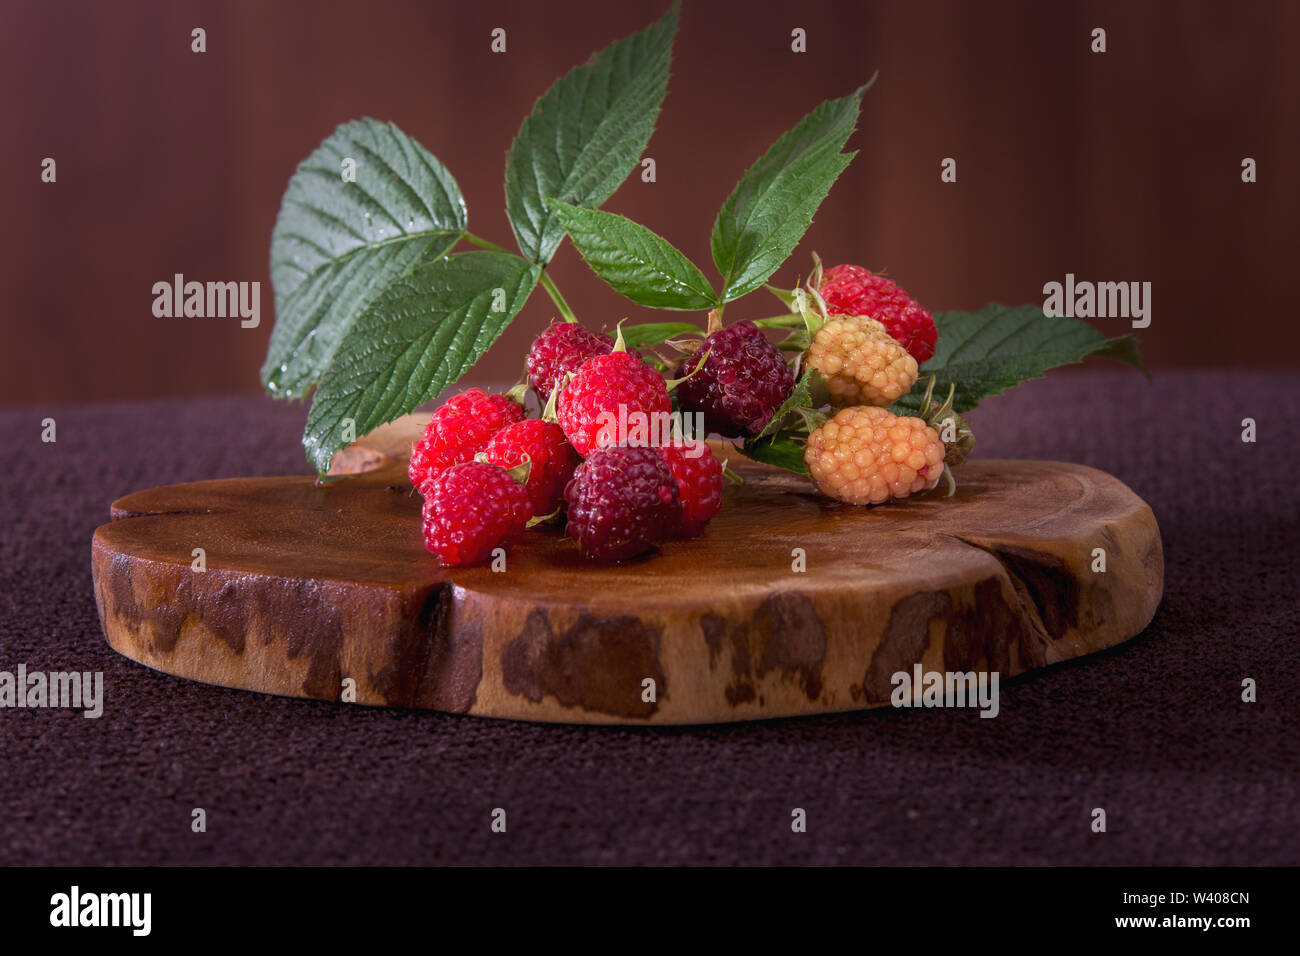 Freshly raspberries pickled from organic culture - Stock Image